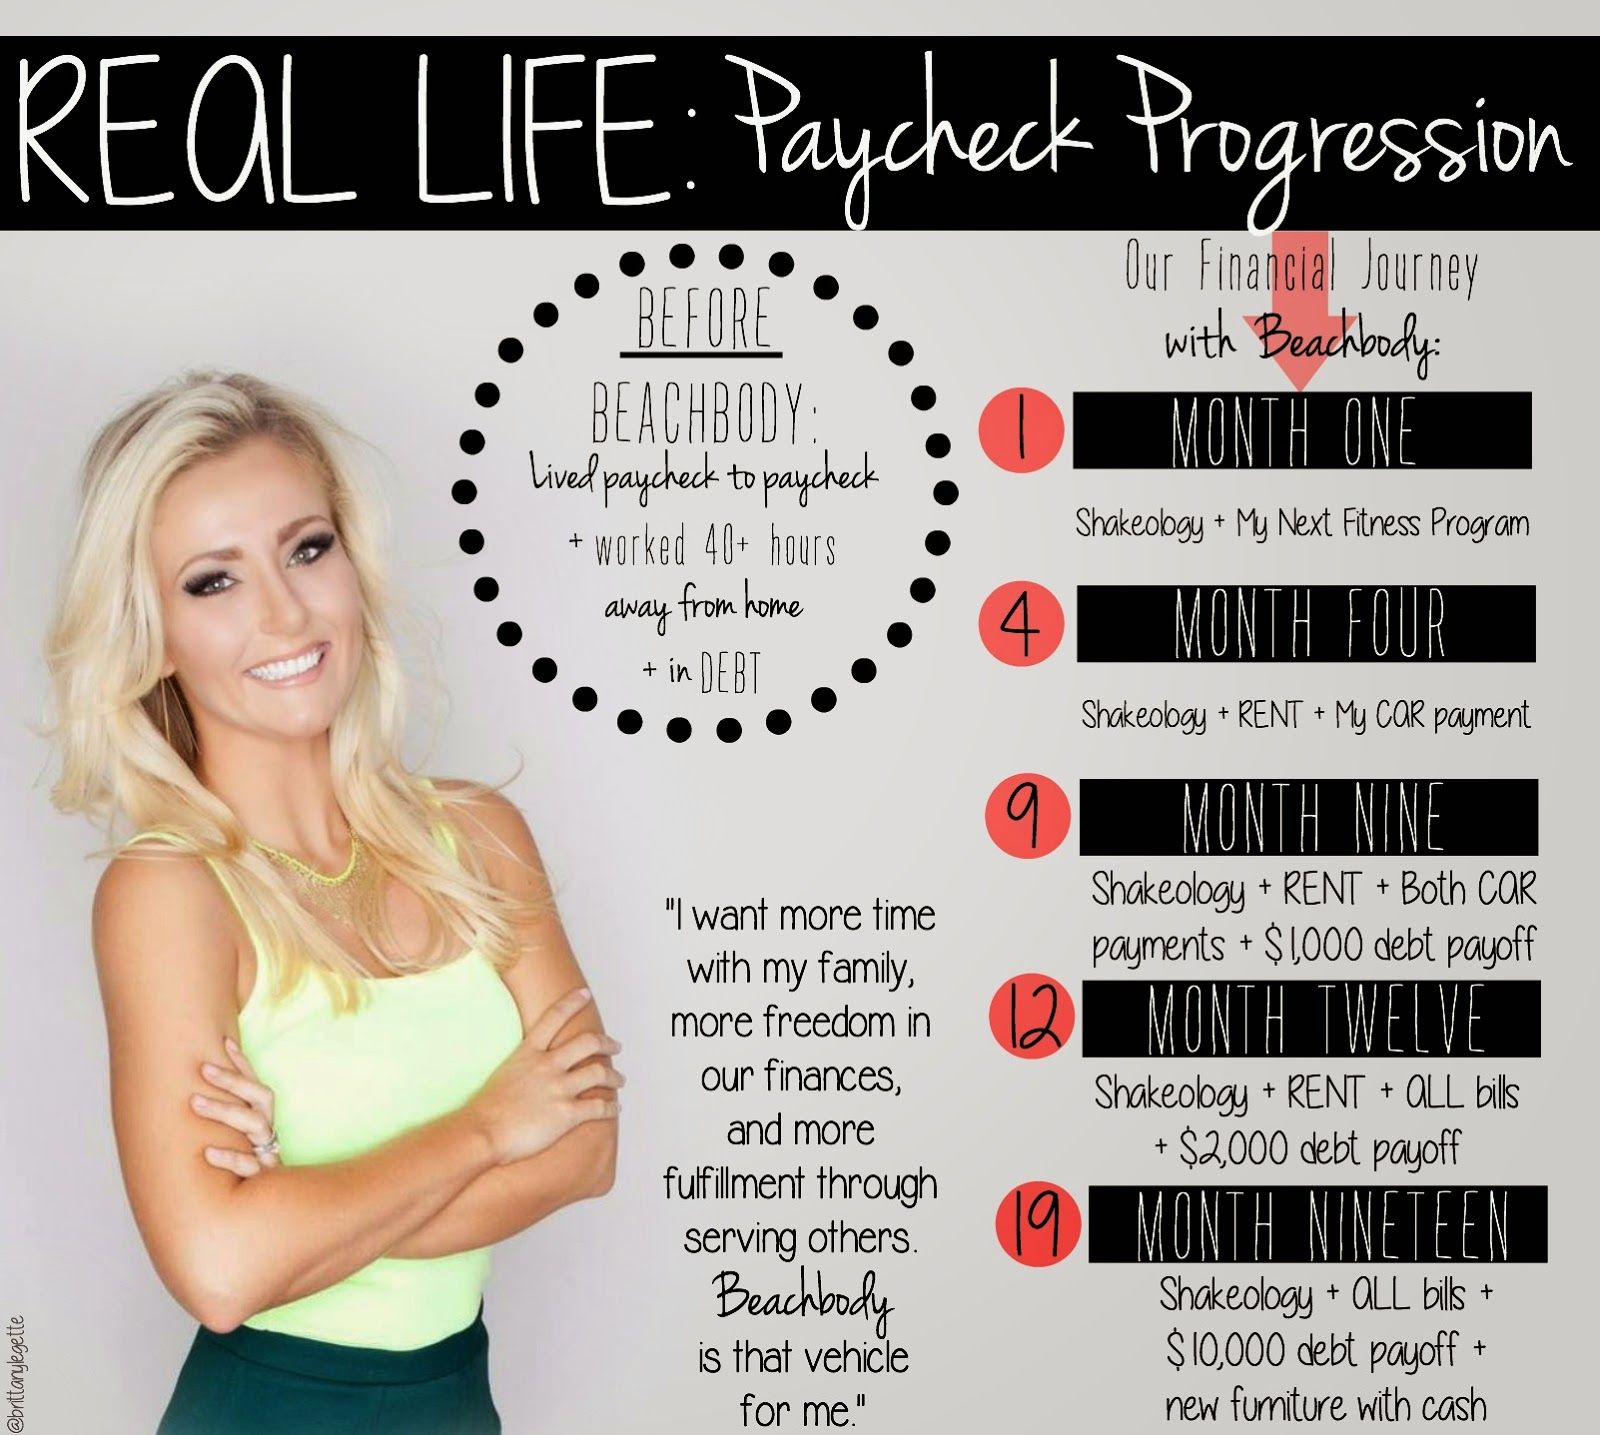 Beachbody Coach REAL LIFE Paycheck Progression brittanyle te